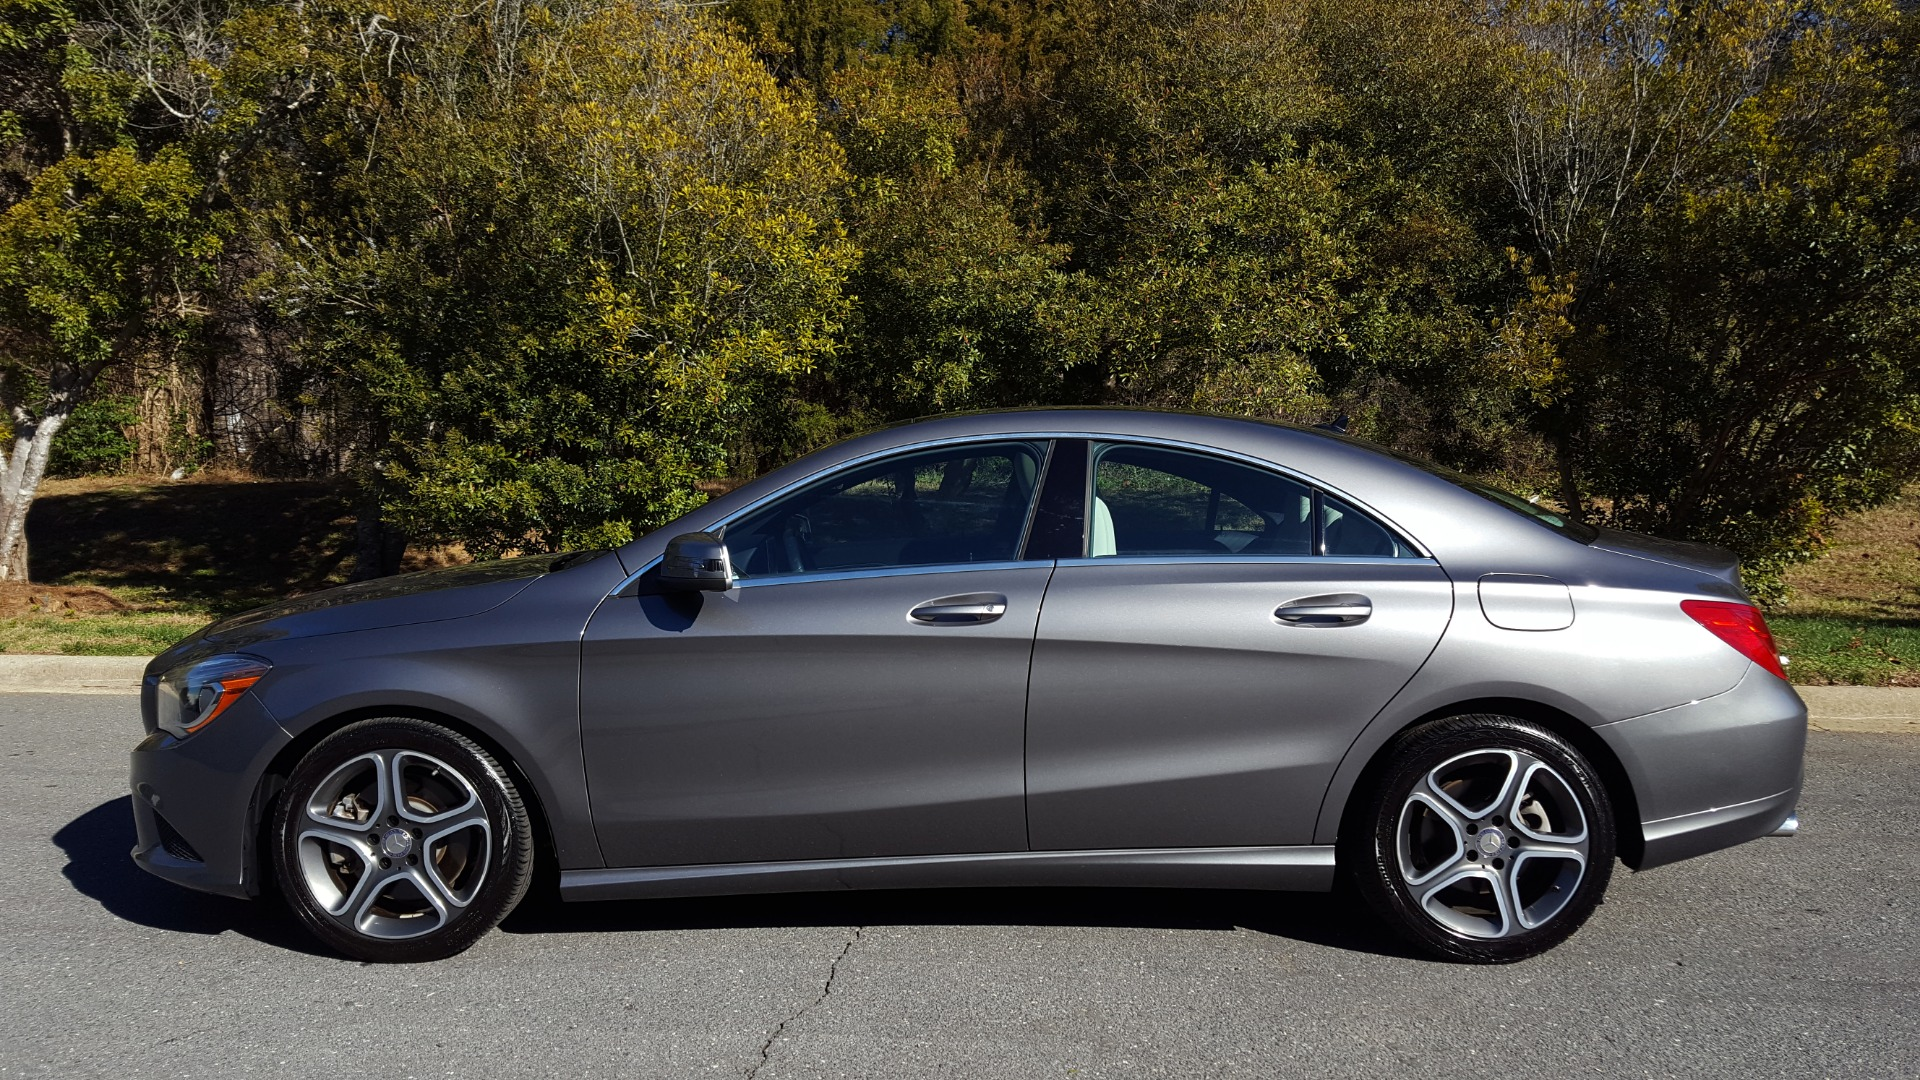 Used 2014 Mercedes-Benz CLA-CLASS CLA 250 / NAV / PANO-ROOF / BLIND SPOT ASSIST / XENON HEADLIGHTS for sale $19,995 at Formula Imports in Charlotte NC 28227 2